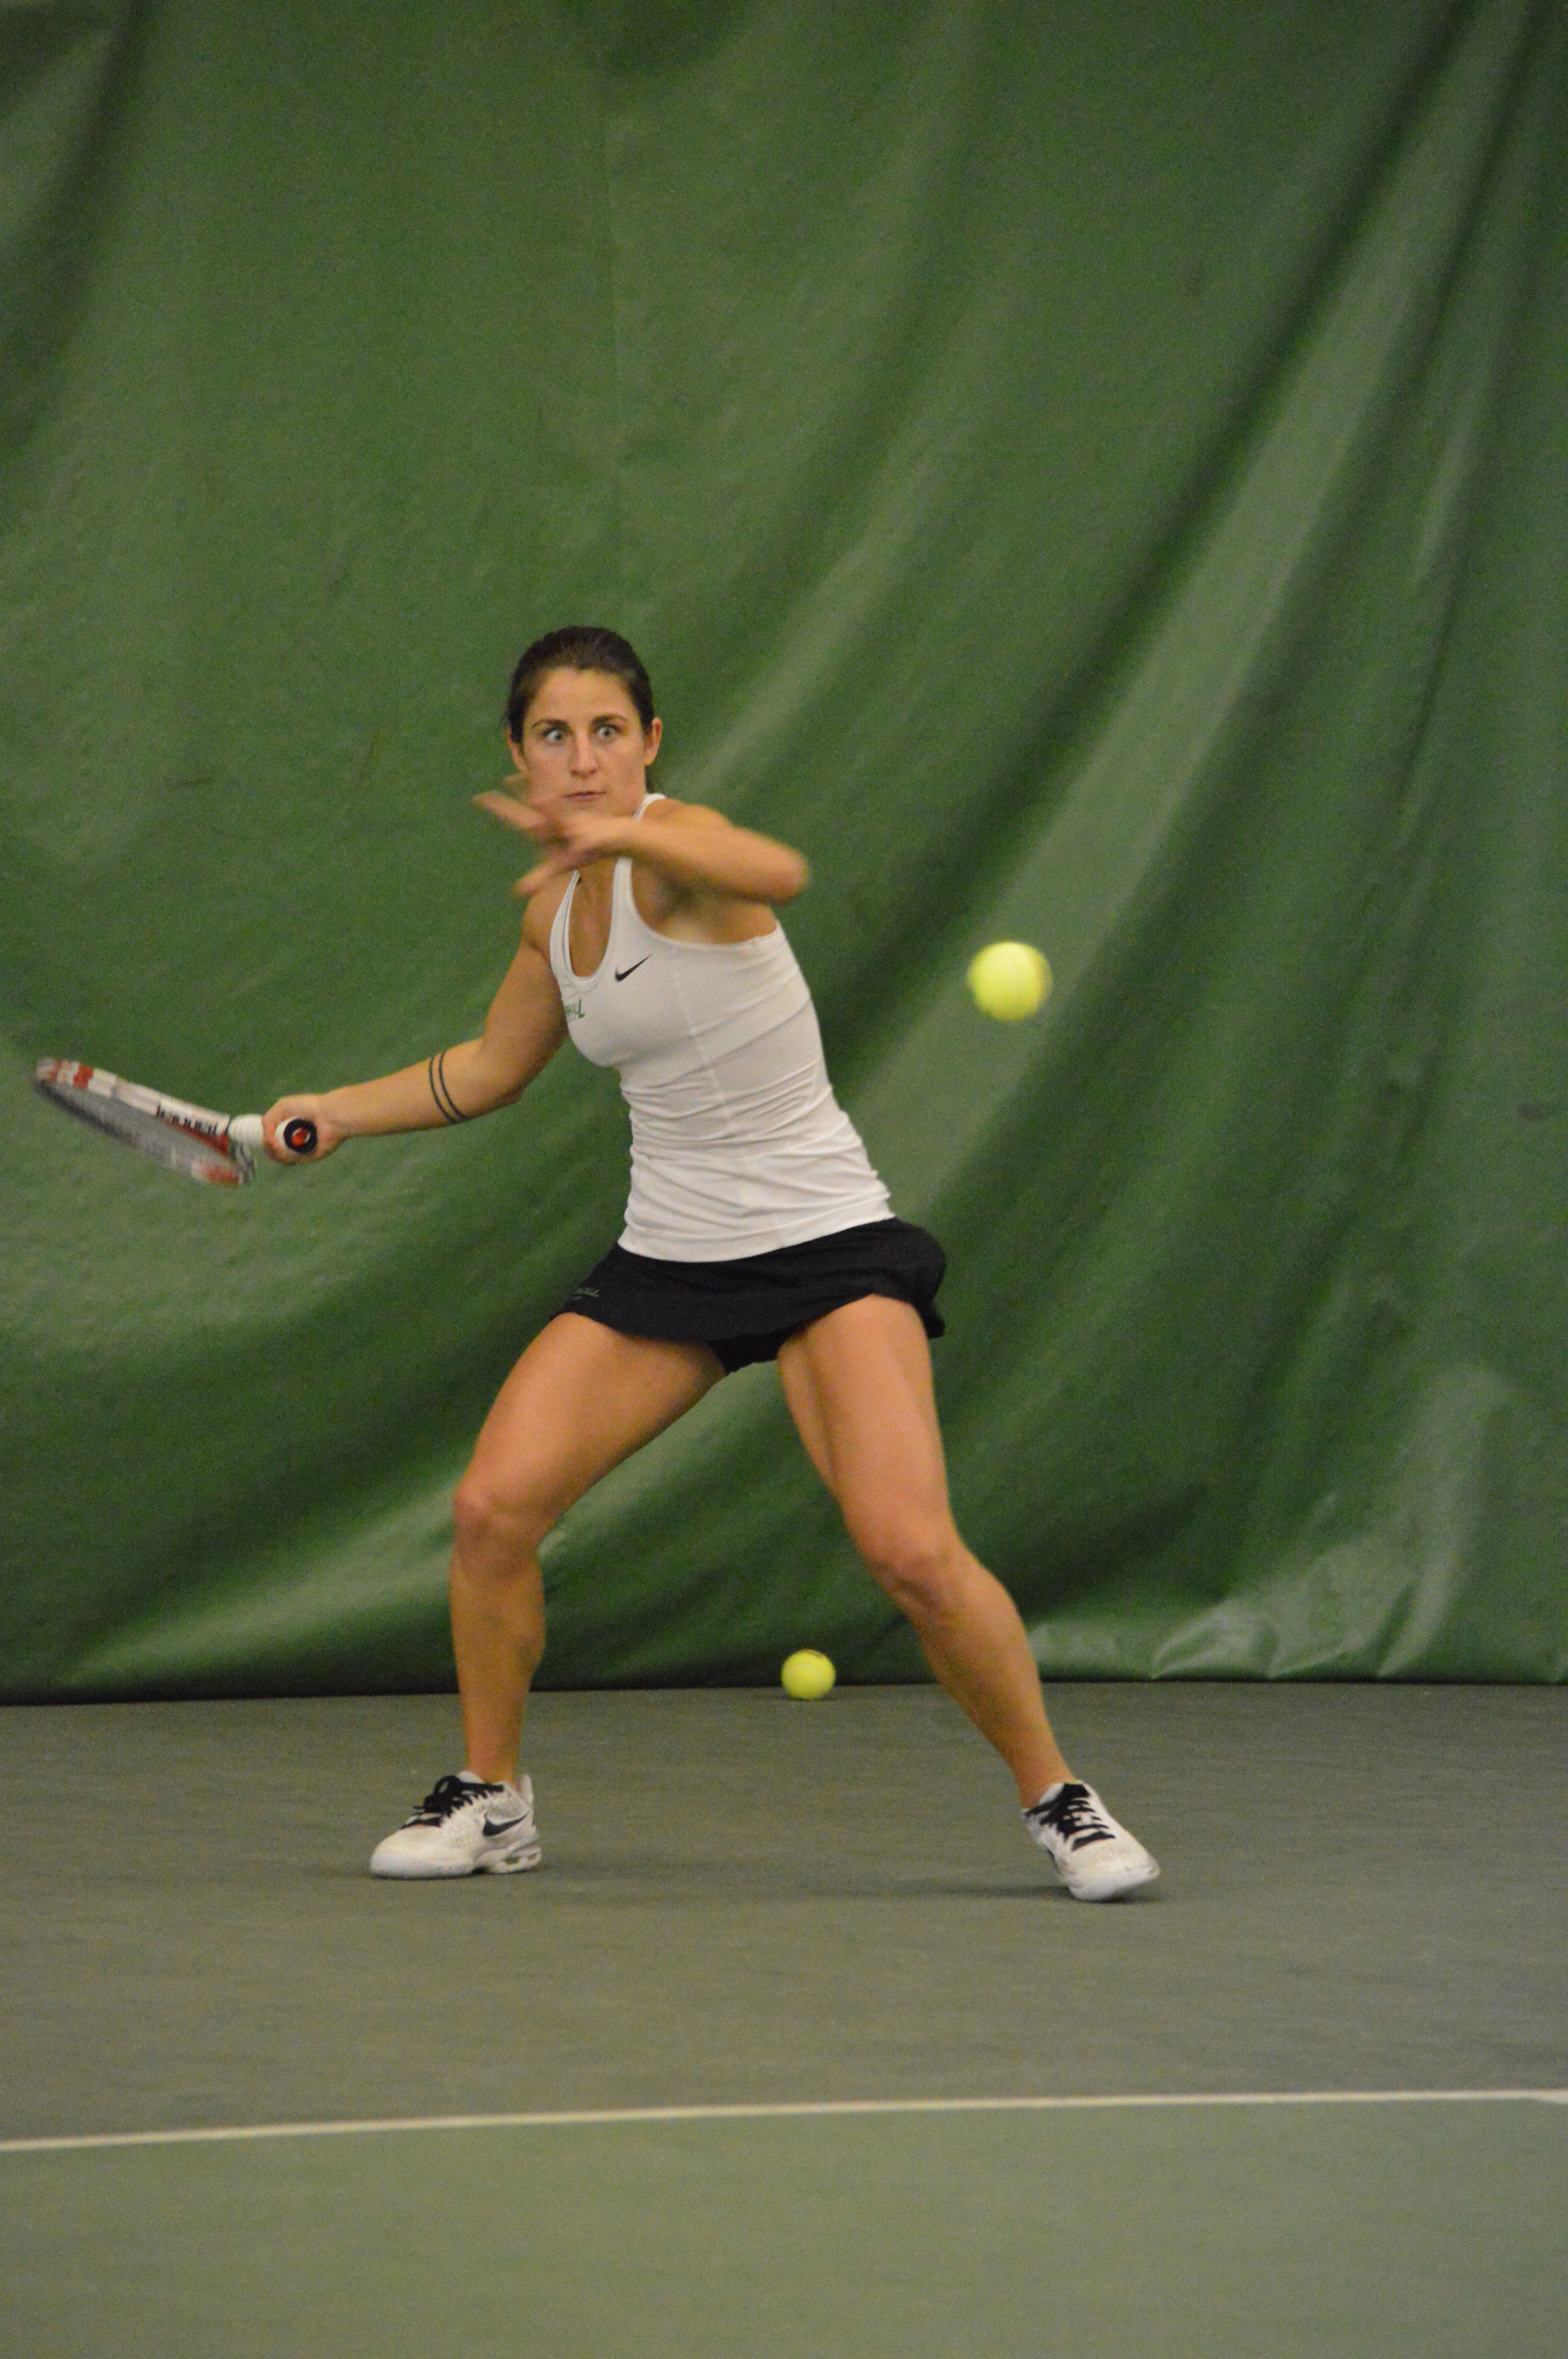 Despite winning the doubles point, Marshall dropped the dual match.